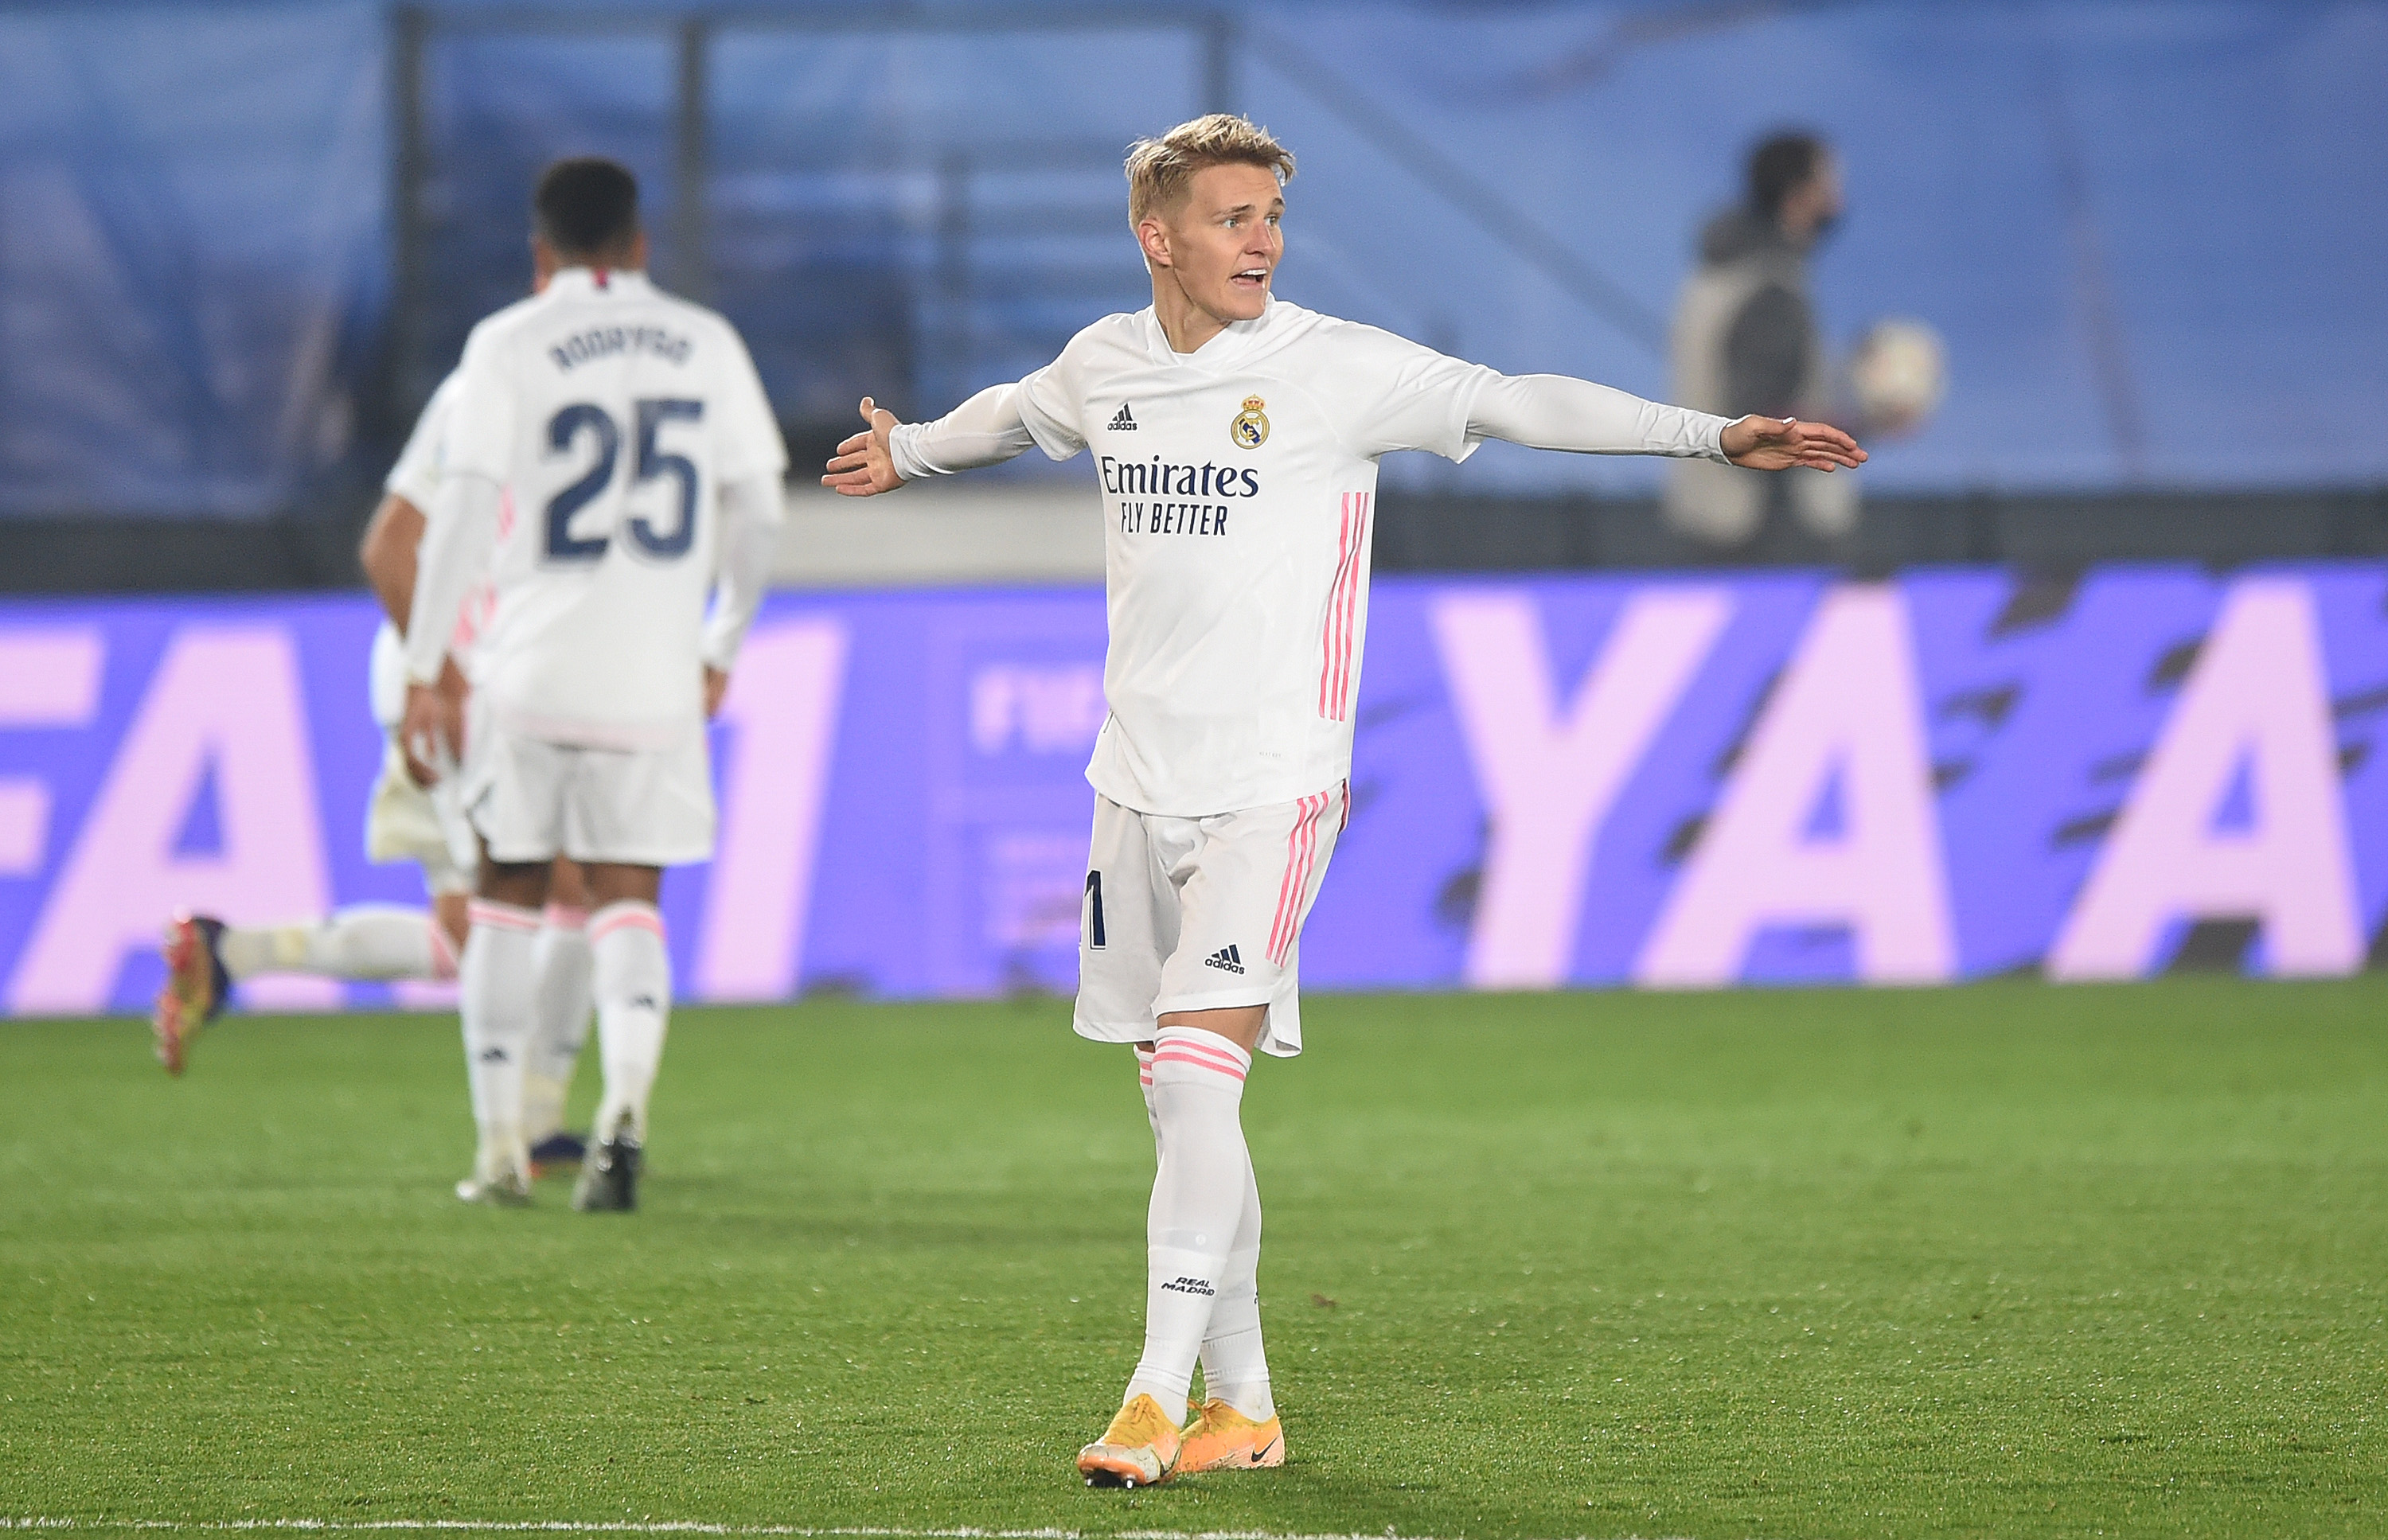 Odegaard joins Arsenal on loan